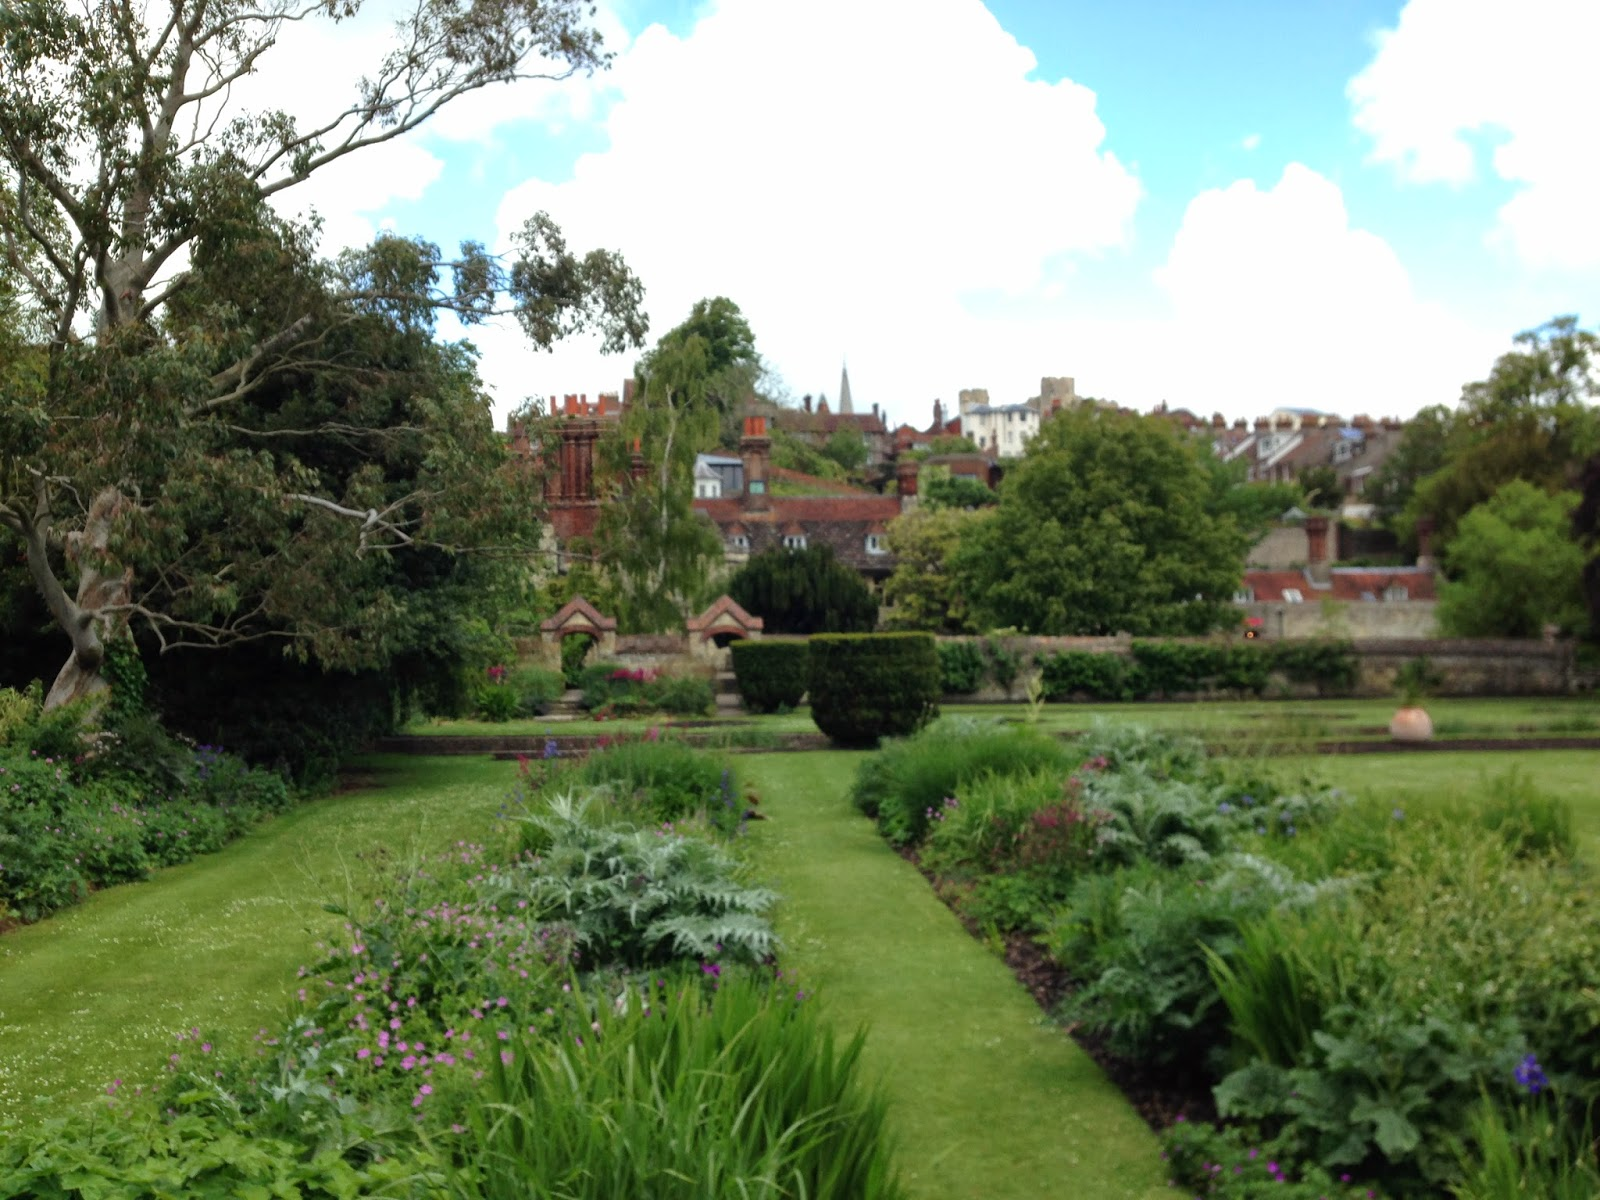 Southover Grange gardens and house